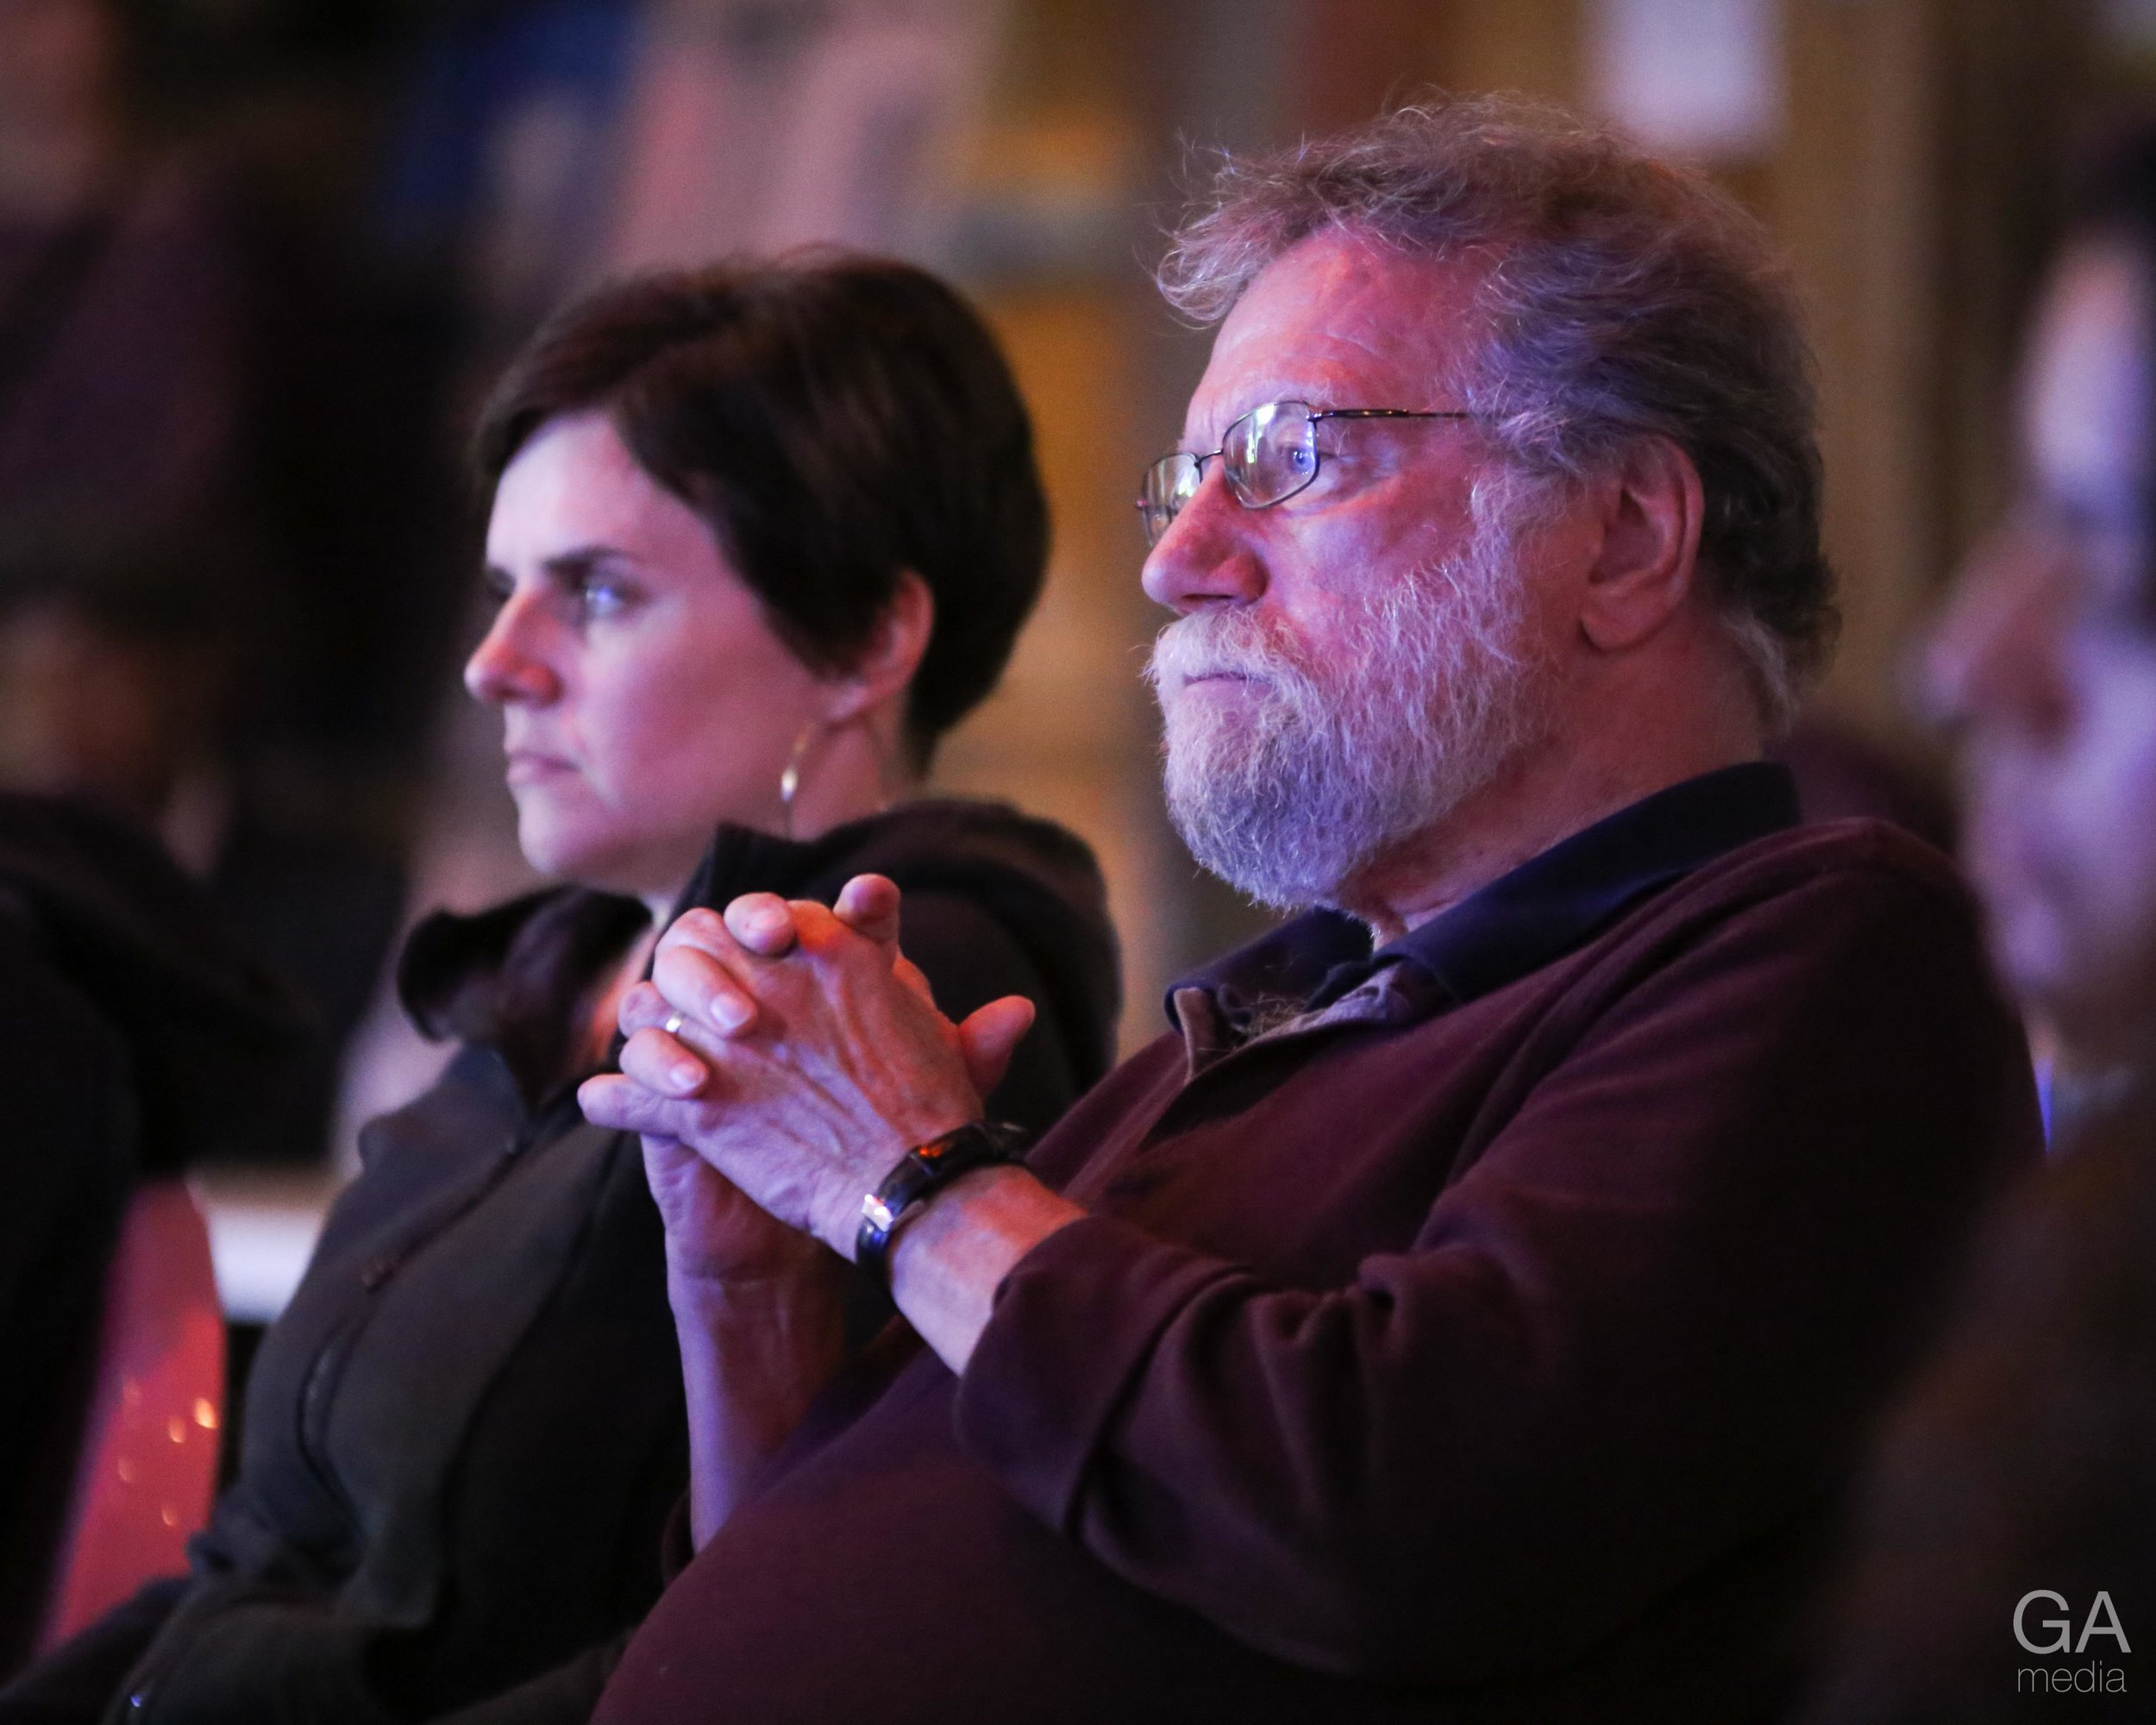 Pub theology attendees listening attentively. (Photo:  GA Media Productions)